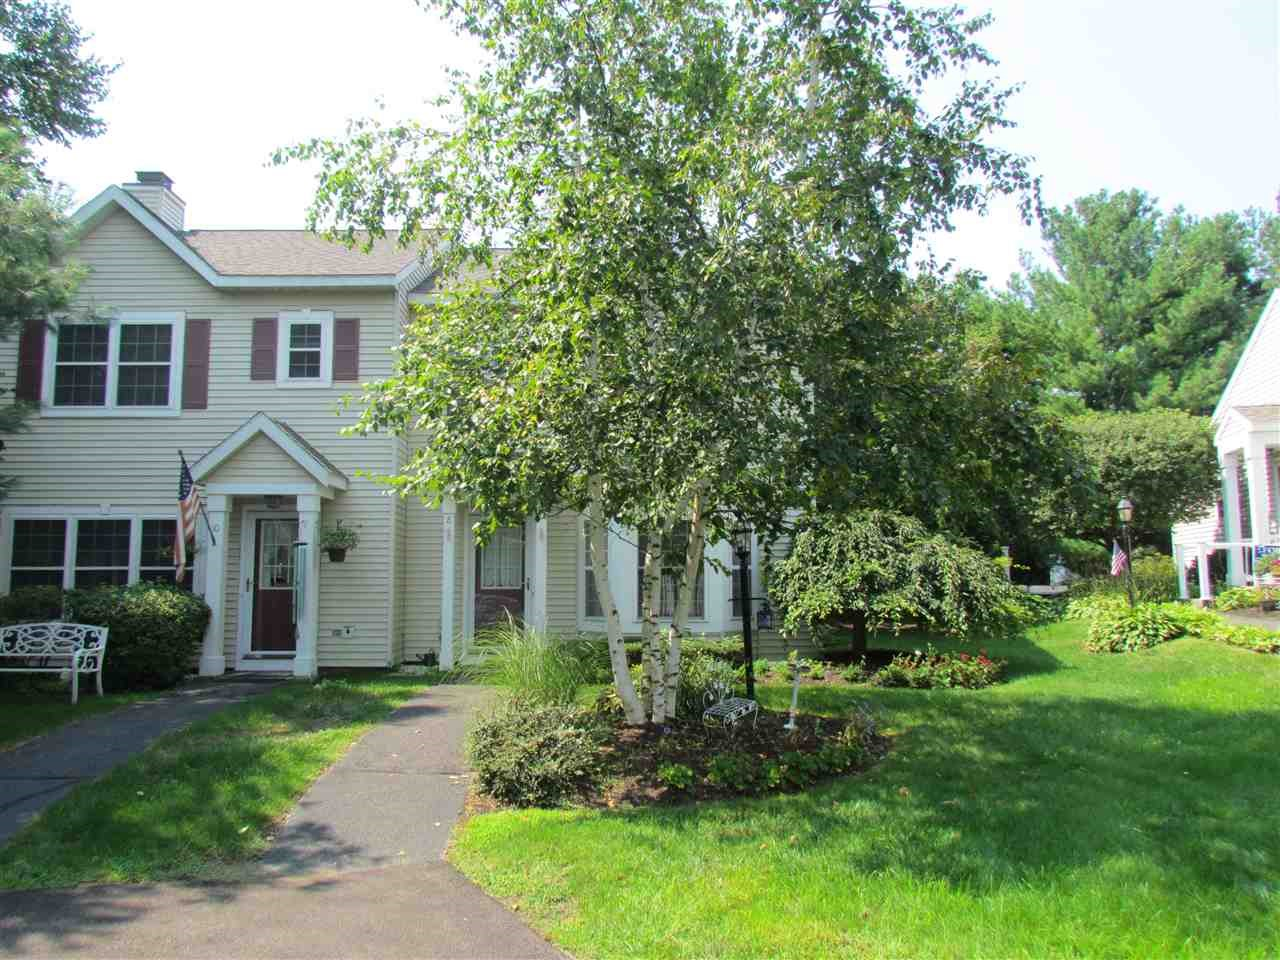 8 HILLTOP CT, North Troy, NY 12182-1666